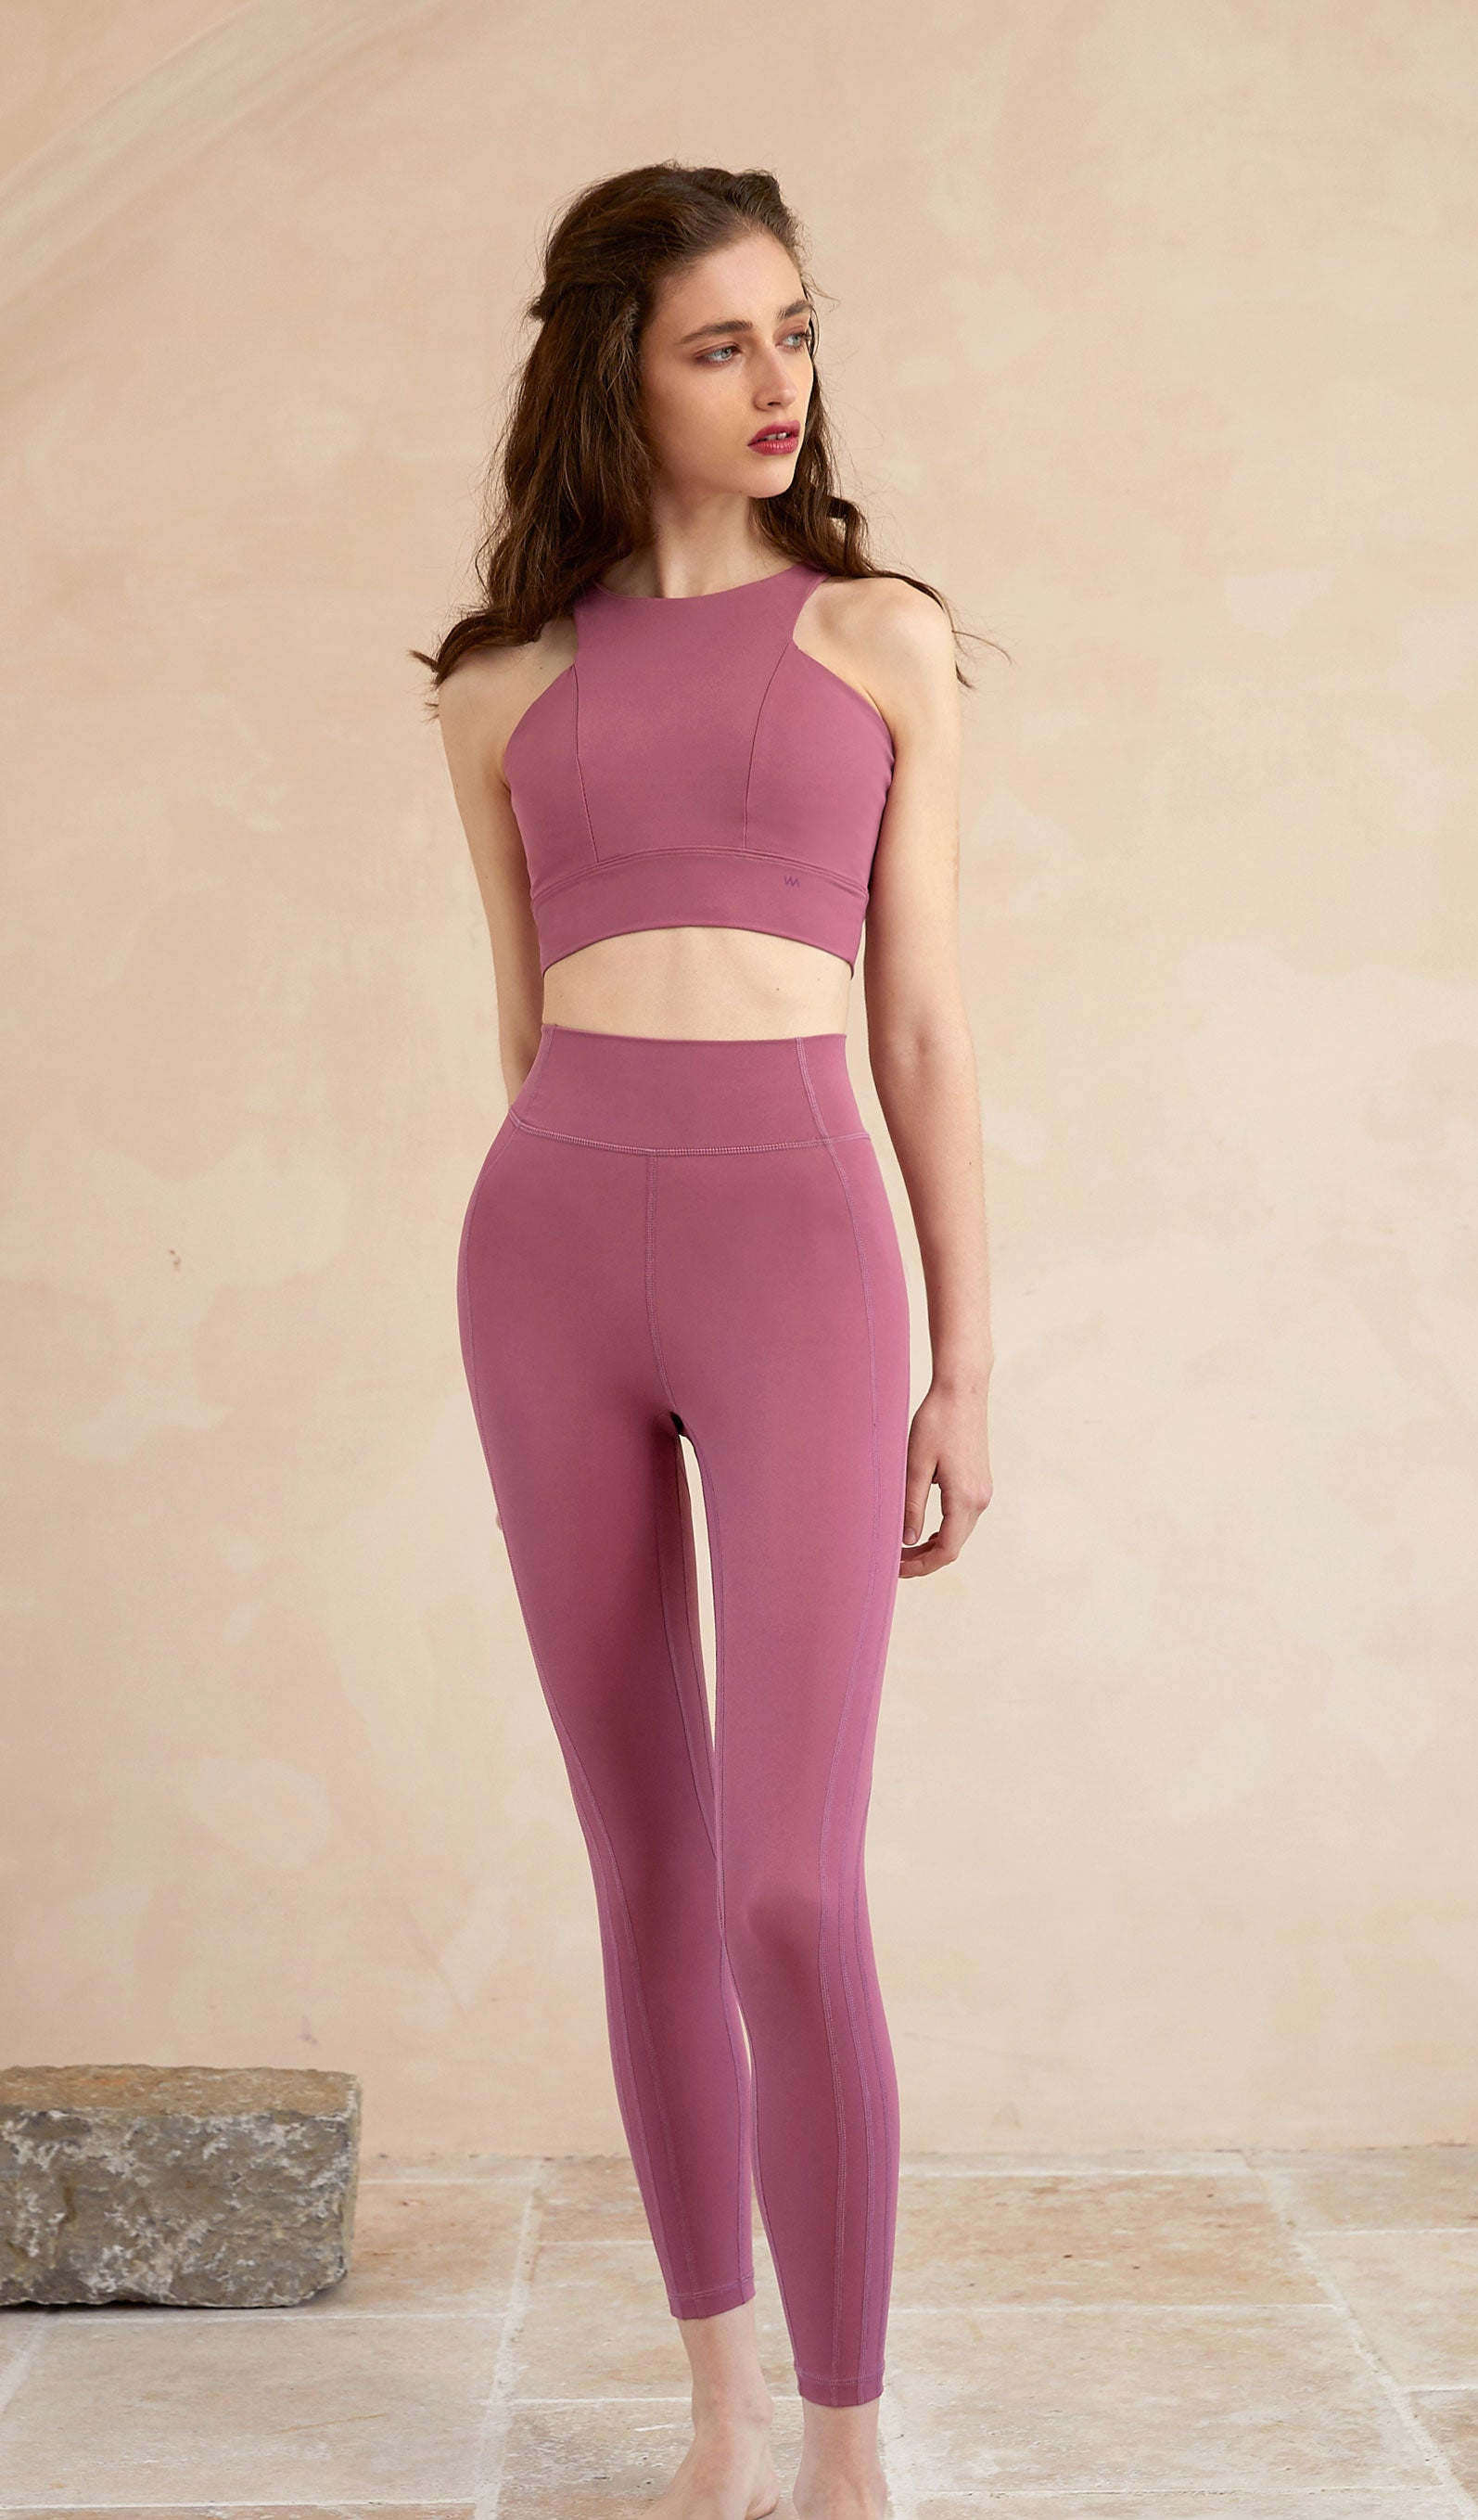 Yoga Top Josie - Dark Pink